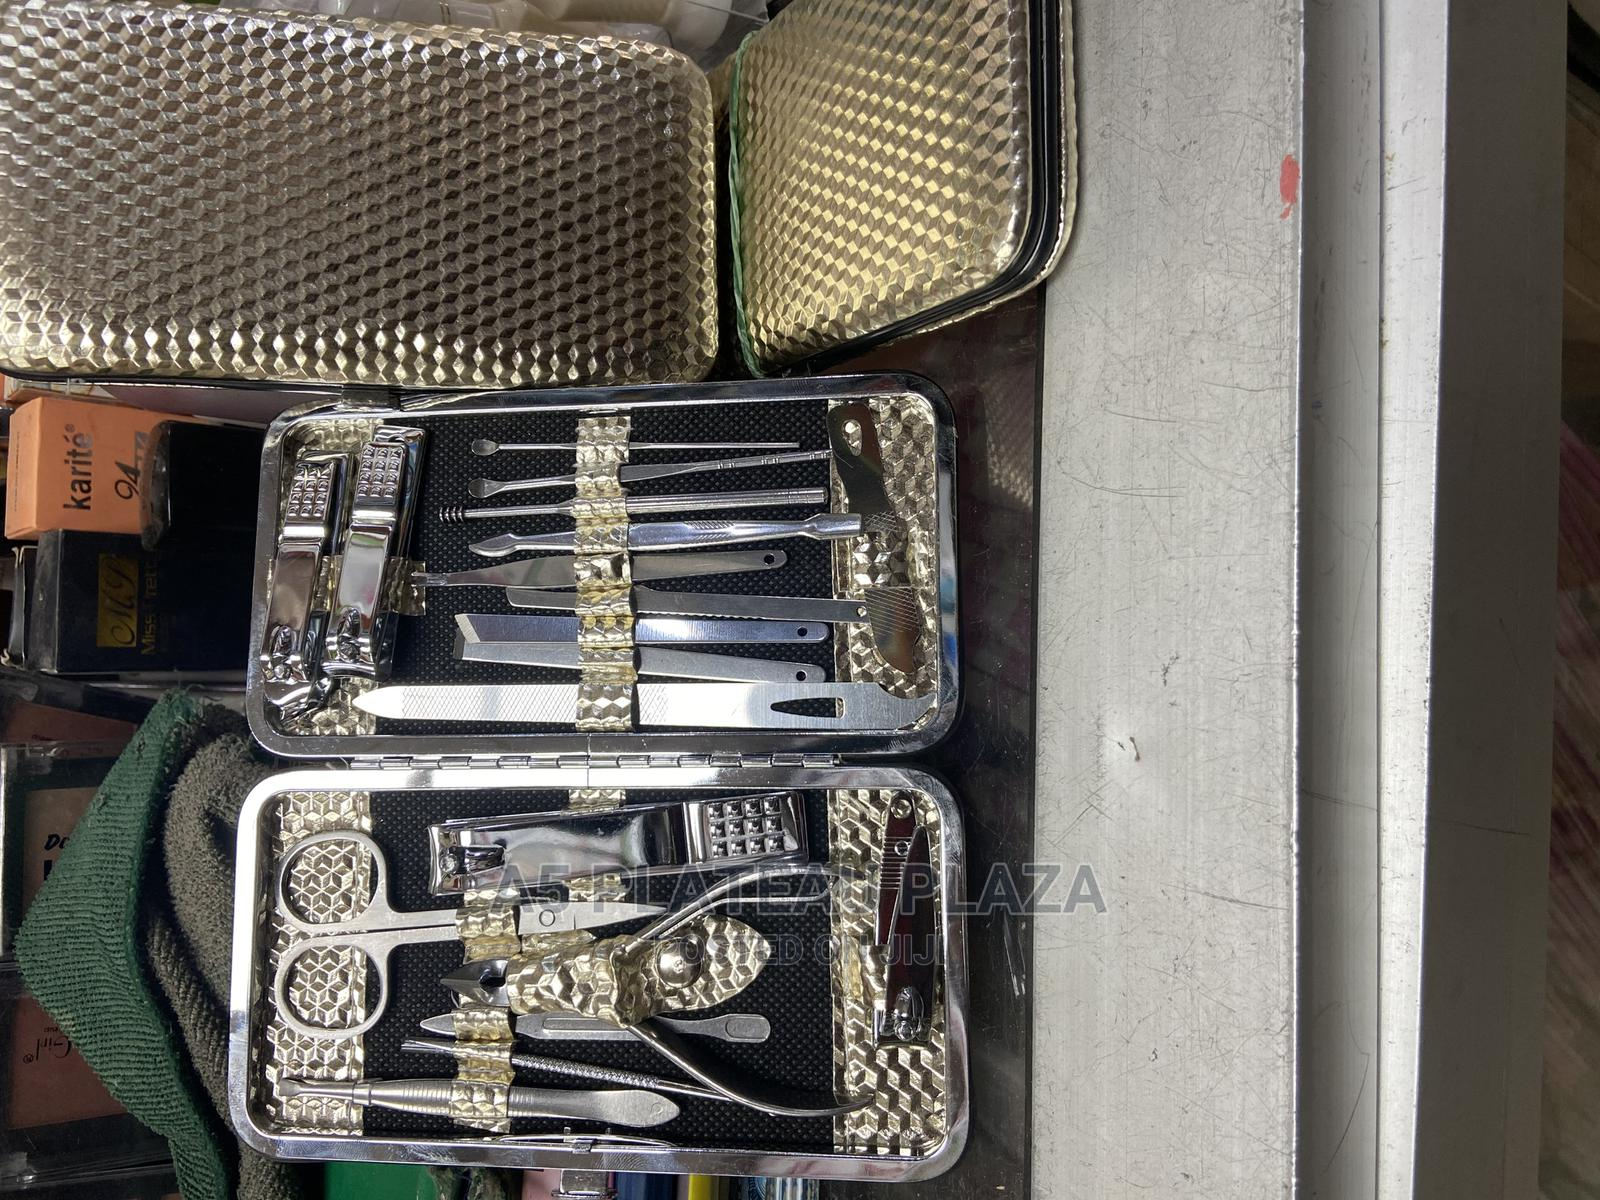 Complete Pedicure and Manicure Kits | Tools & Accessories for sale in Ojo, Lagos State, Nigeria